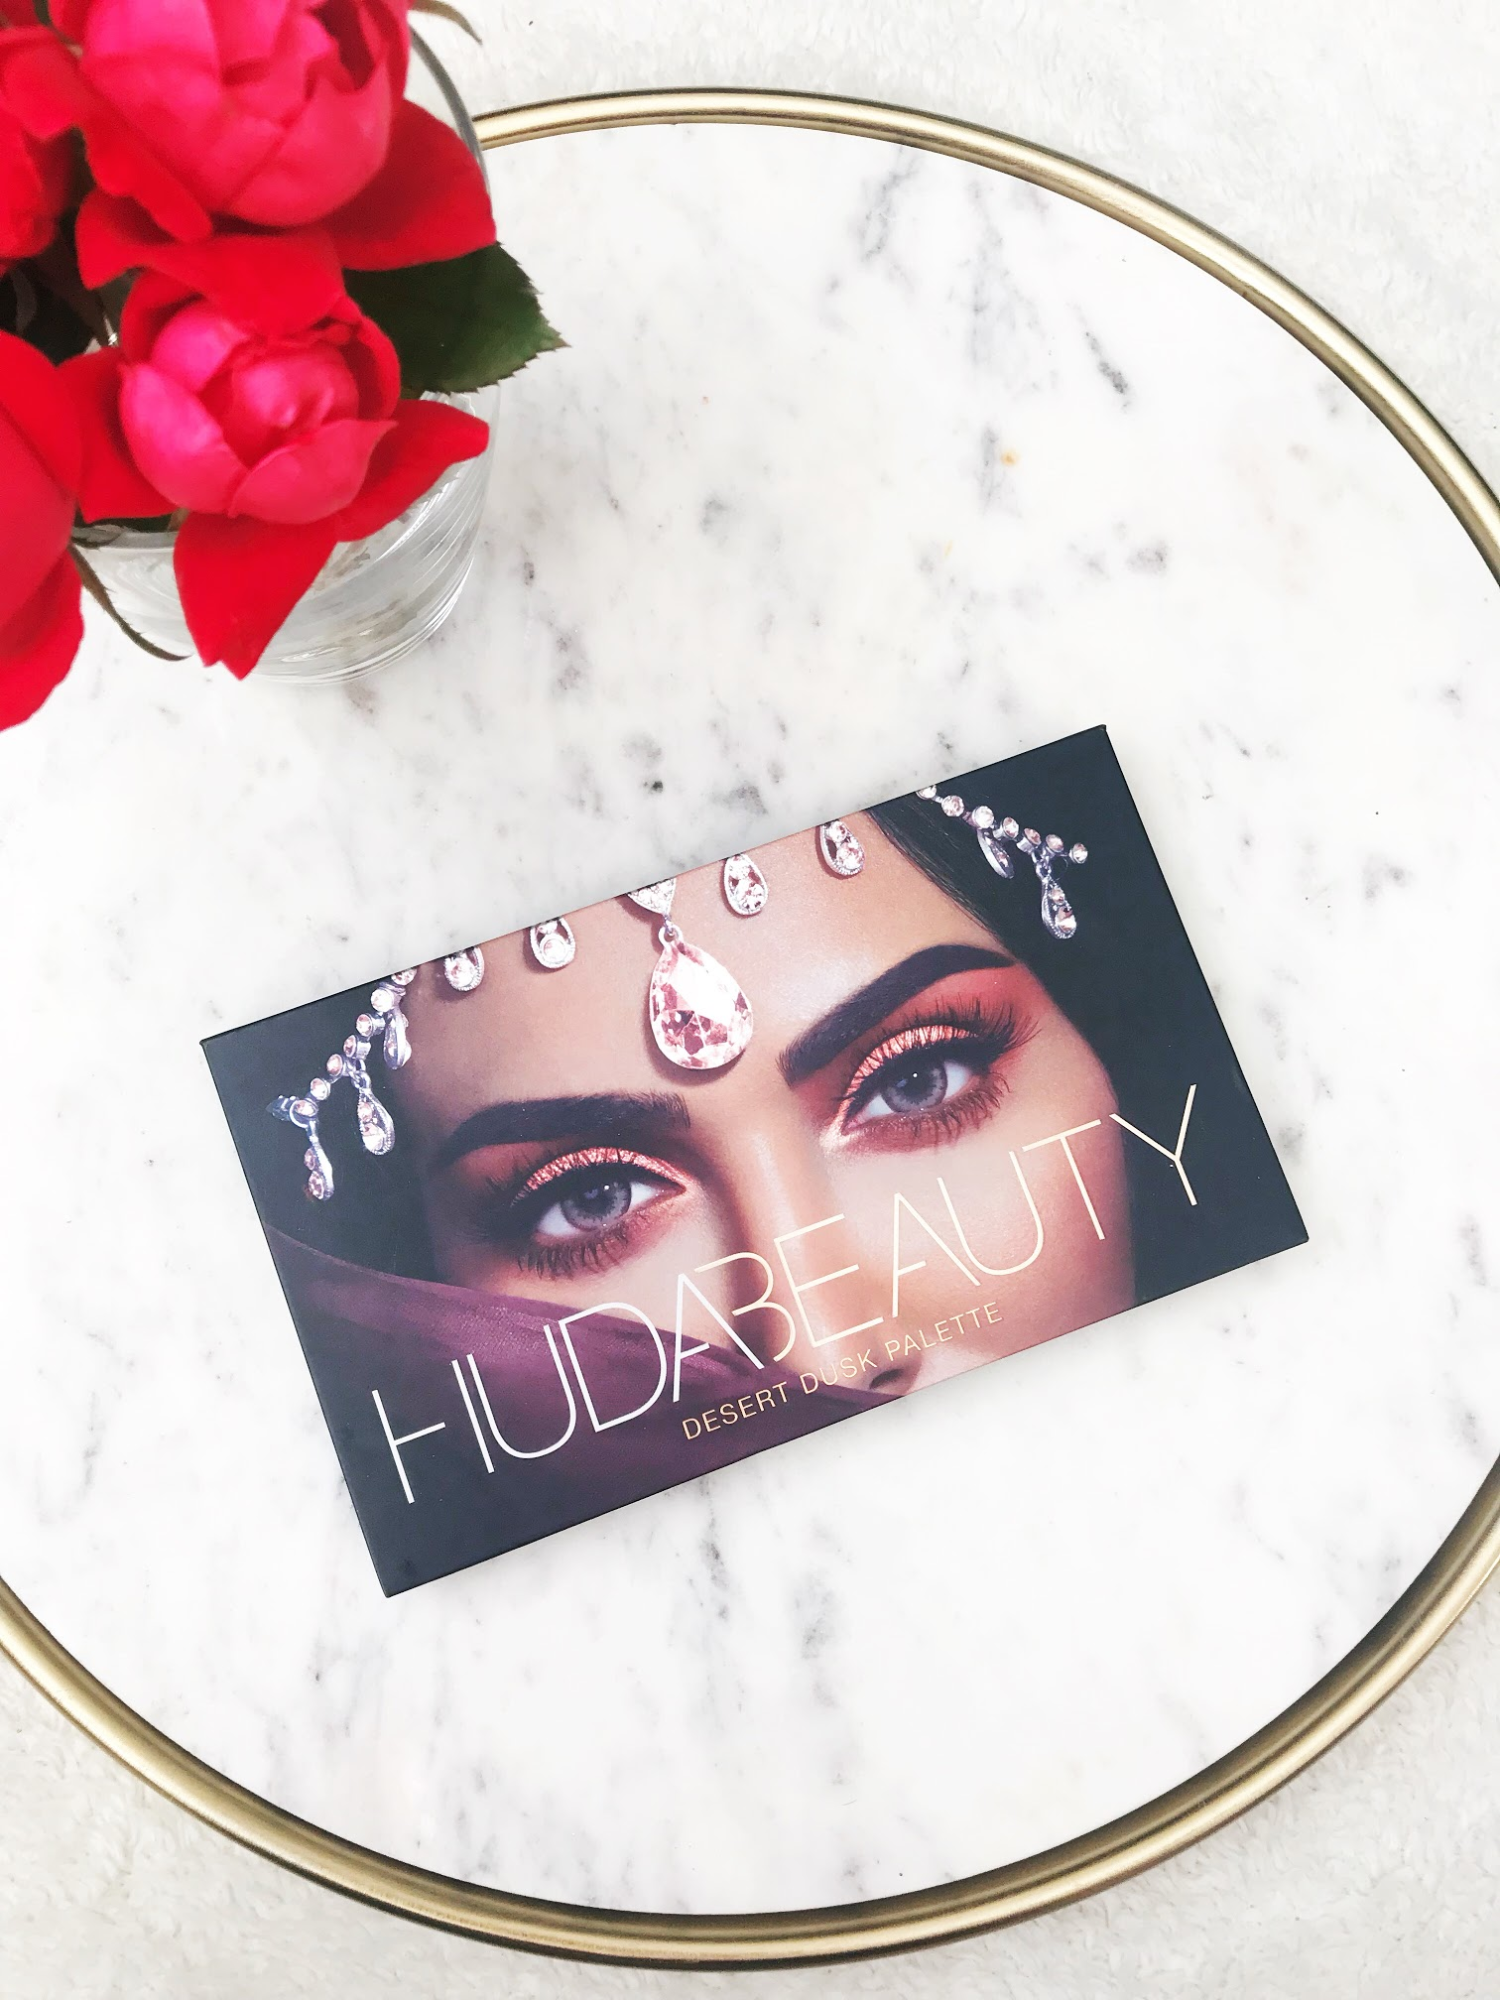 STH Huda Beauty Desert Dusk Palette Review + Swatches